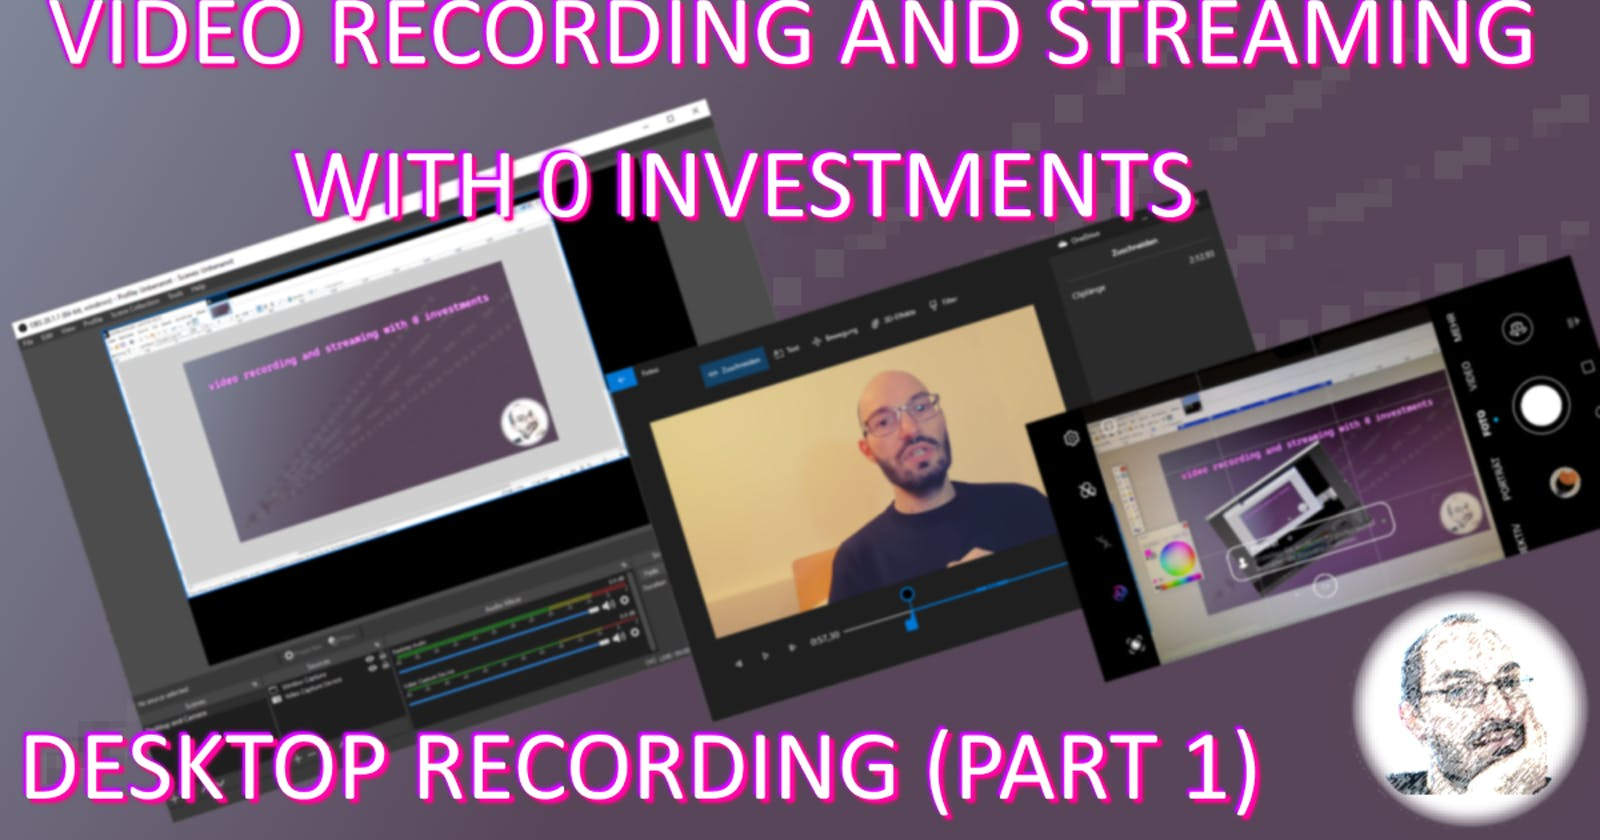 Video recording and streaming with 0 investments - desktop recording